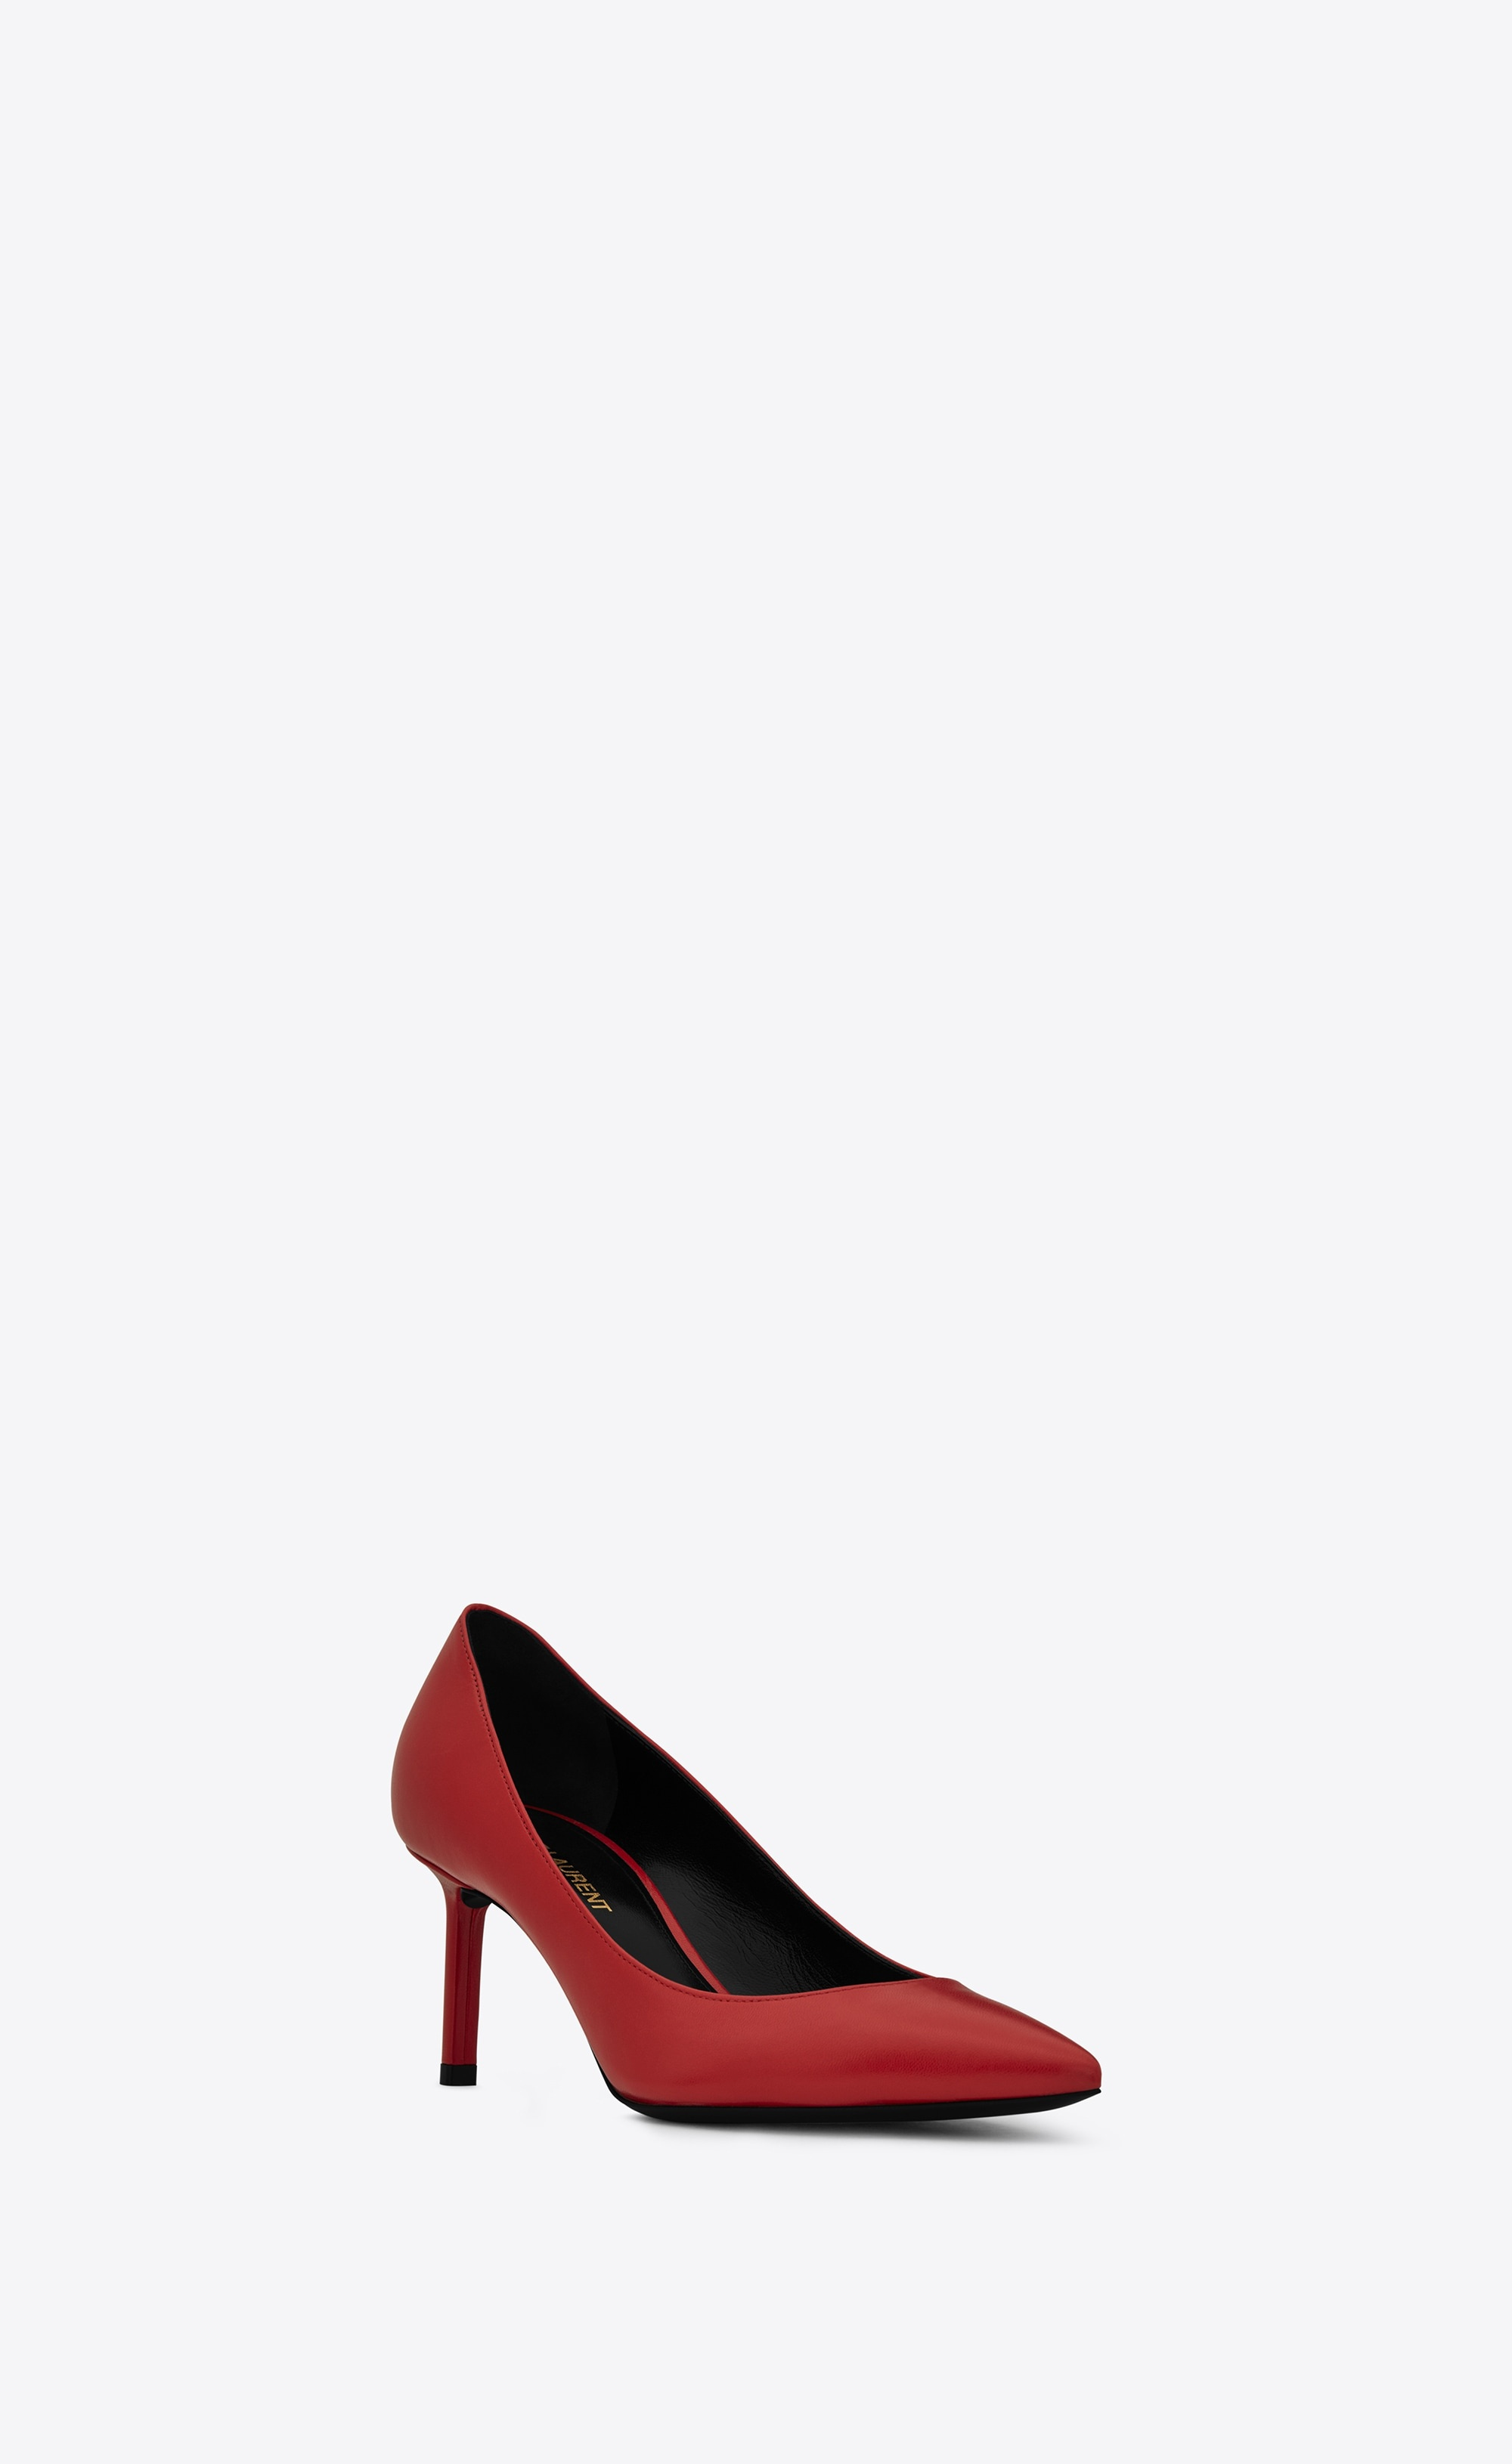 ca57d95ef92 Are there any comfortable heels  - Quora